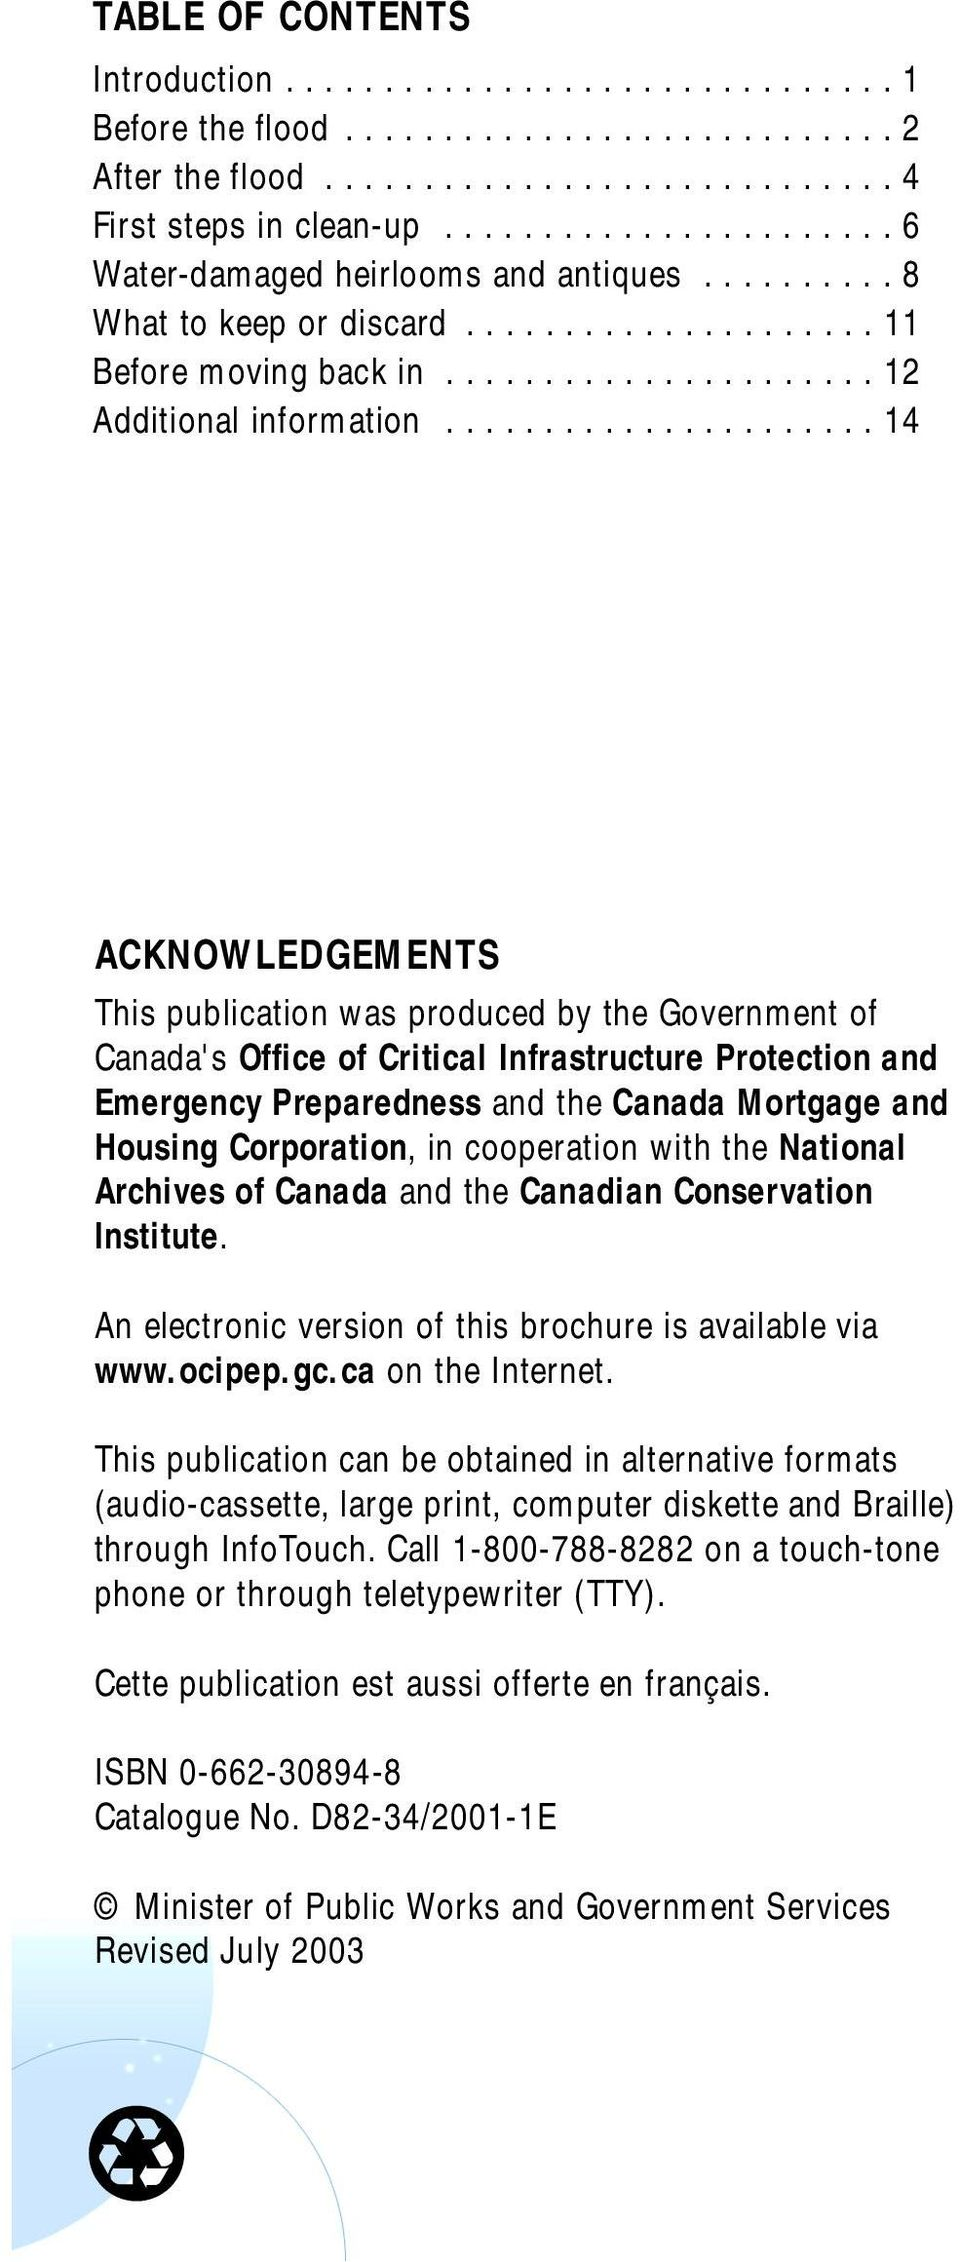 ..................... 14 ACKNOWLEDGEMENTS This publication was produced by the Government of Canada's Office of Critical Infrastructure Protection and Emergency Preparedness and the Canada Mortgage